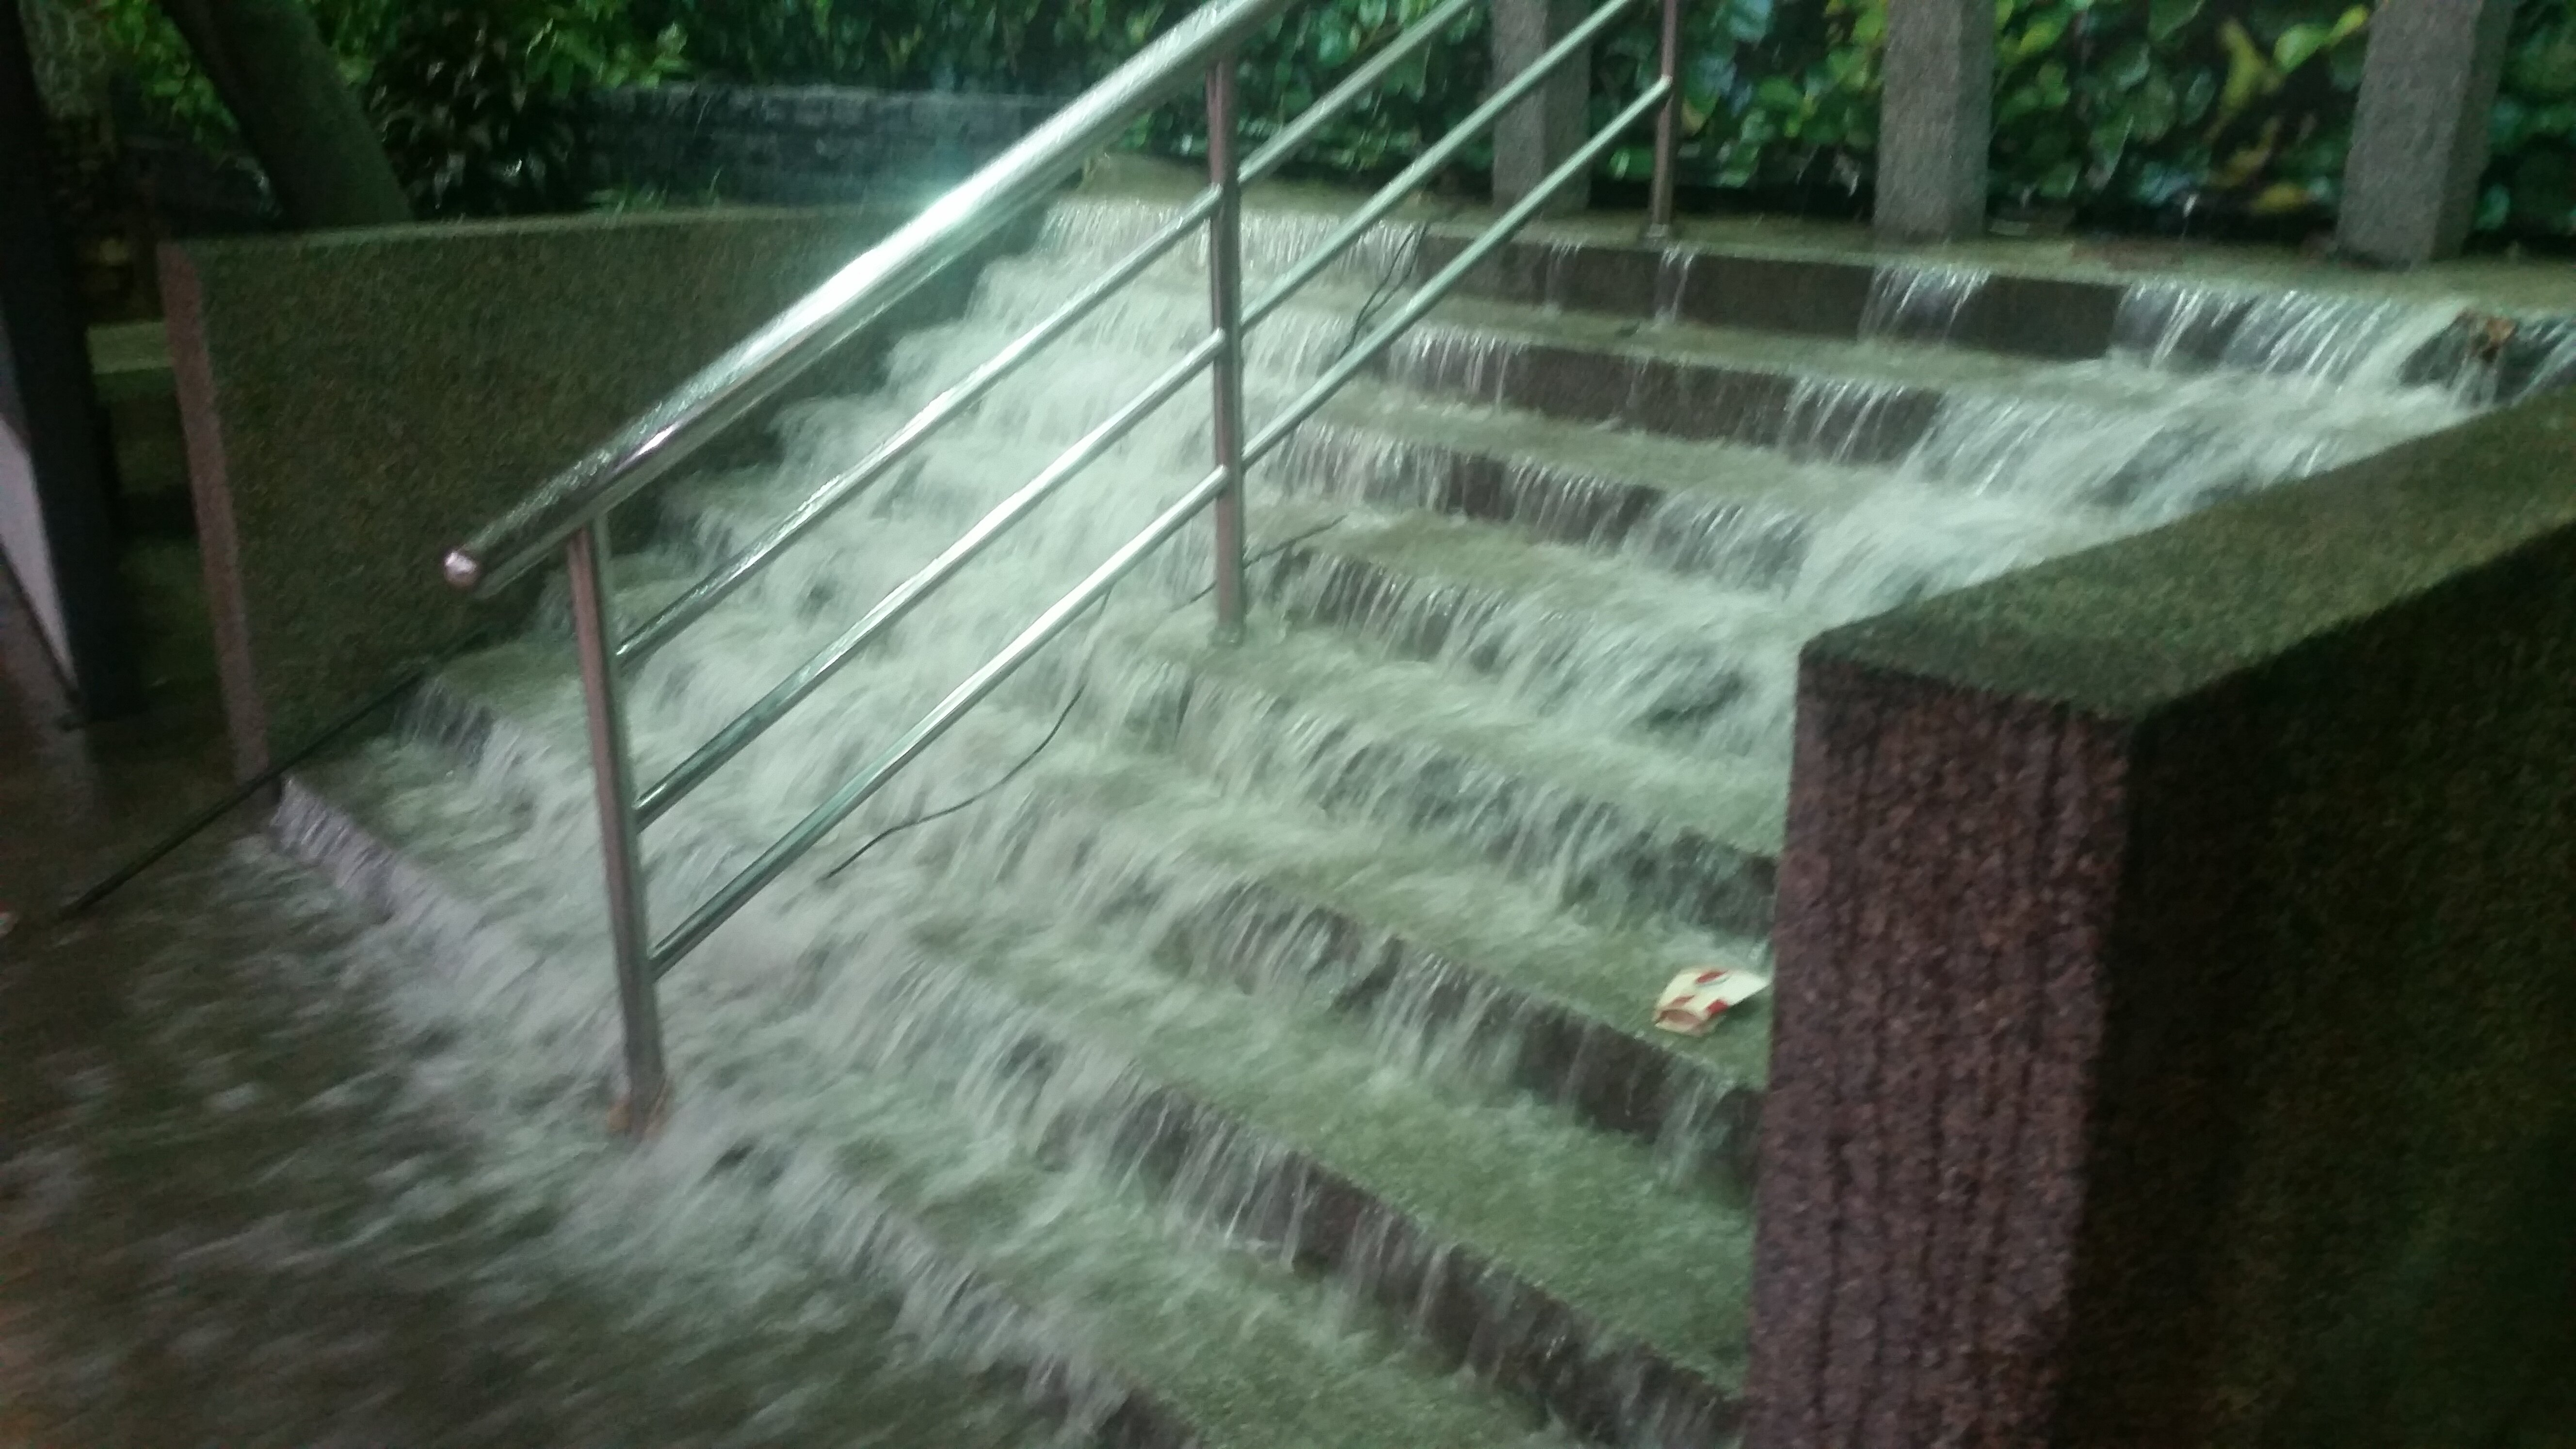 Stairs turned into a waterfall during heavy rainfall.